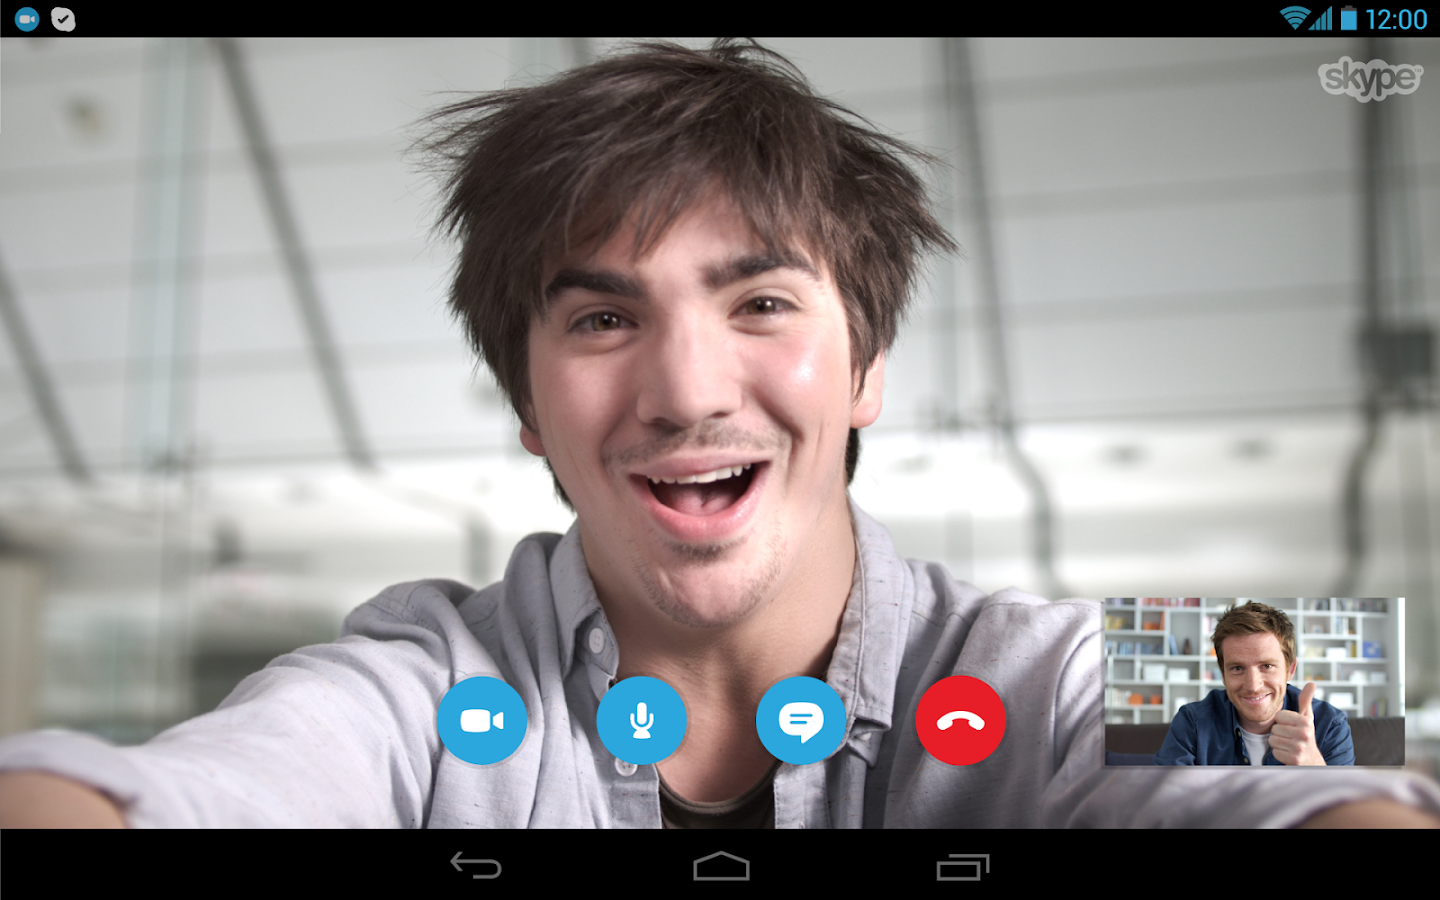 Skype - free IM & video calls - screenshot